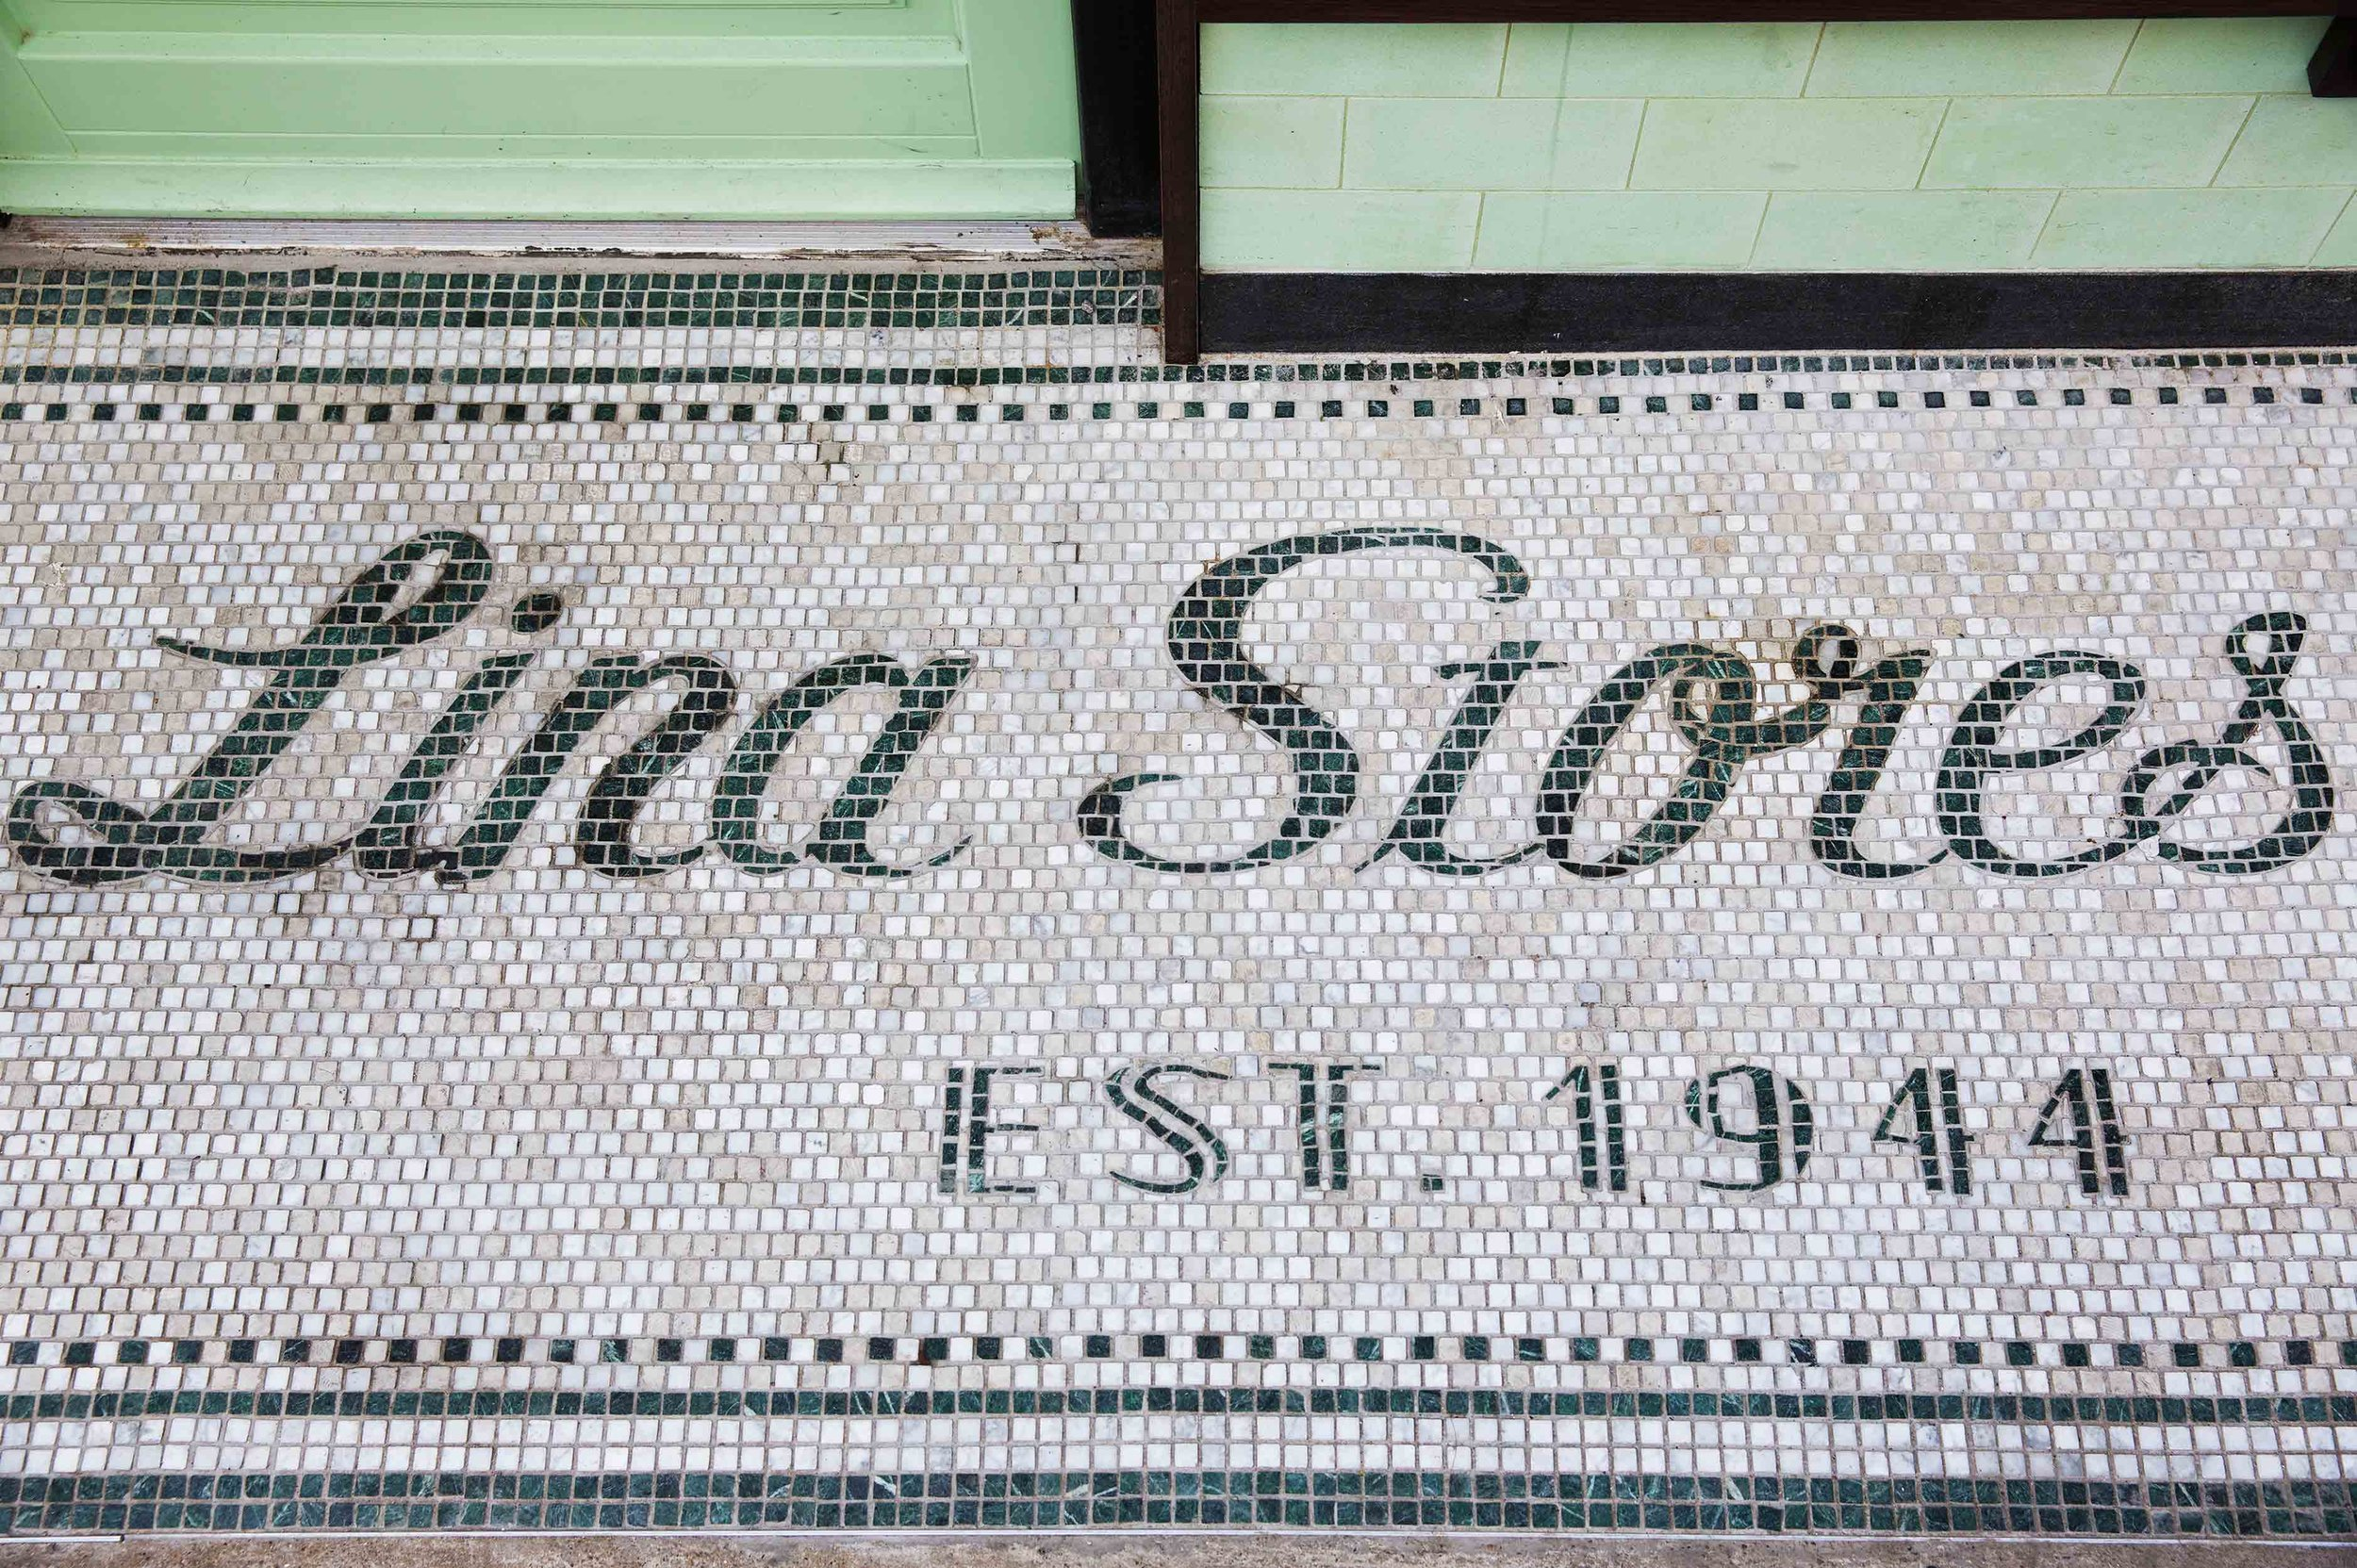 Opened in Brewer Street, Soho in 1947 by Lina an Italian immigrant from Genoa